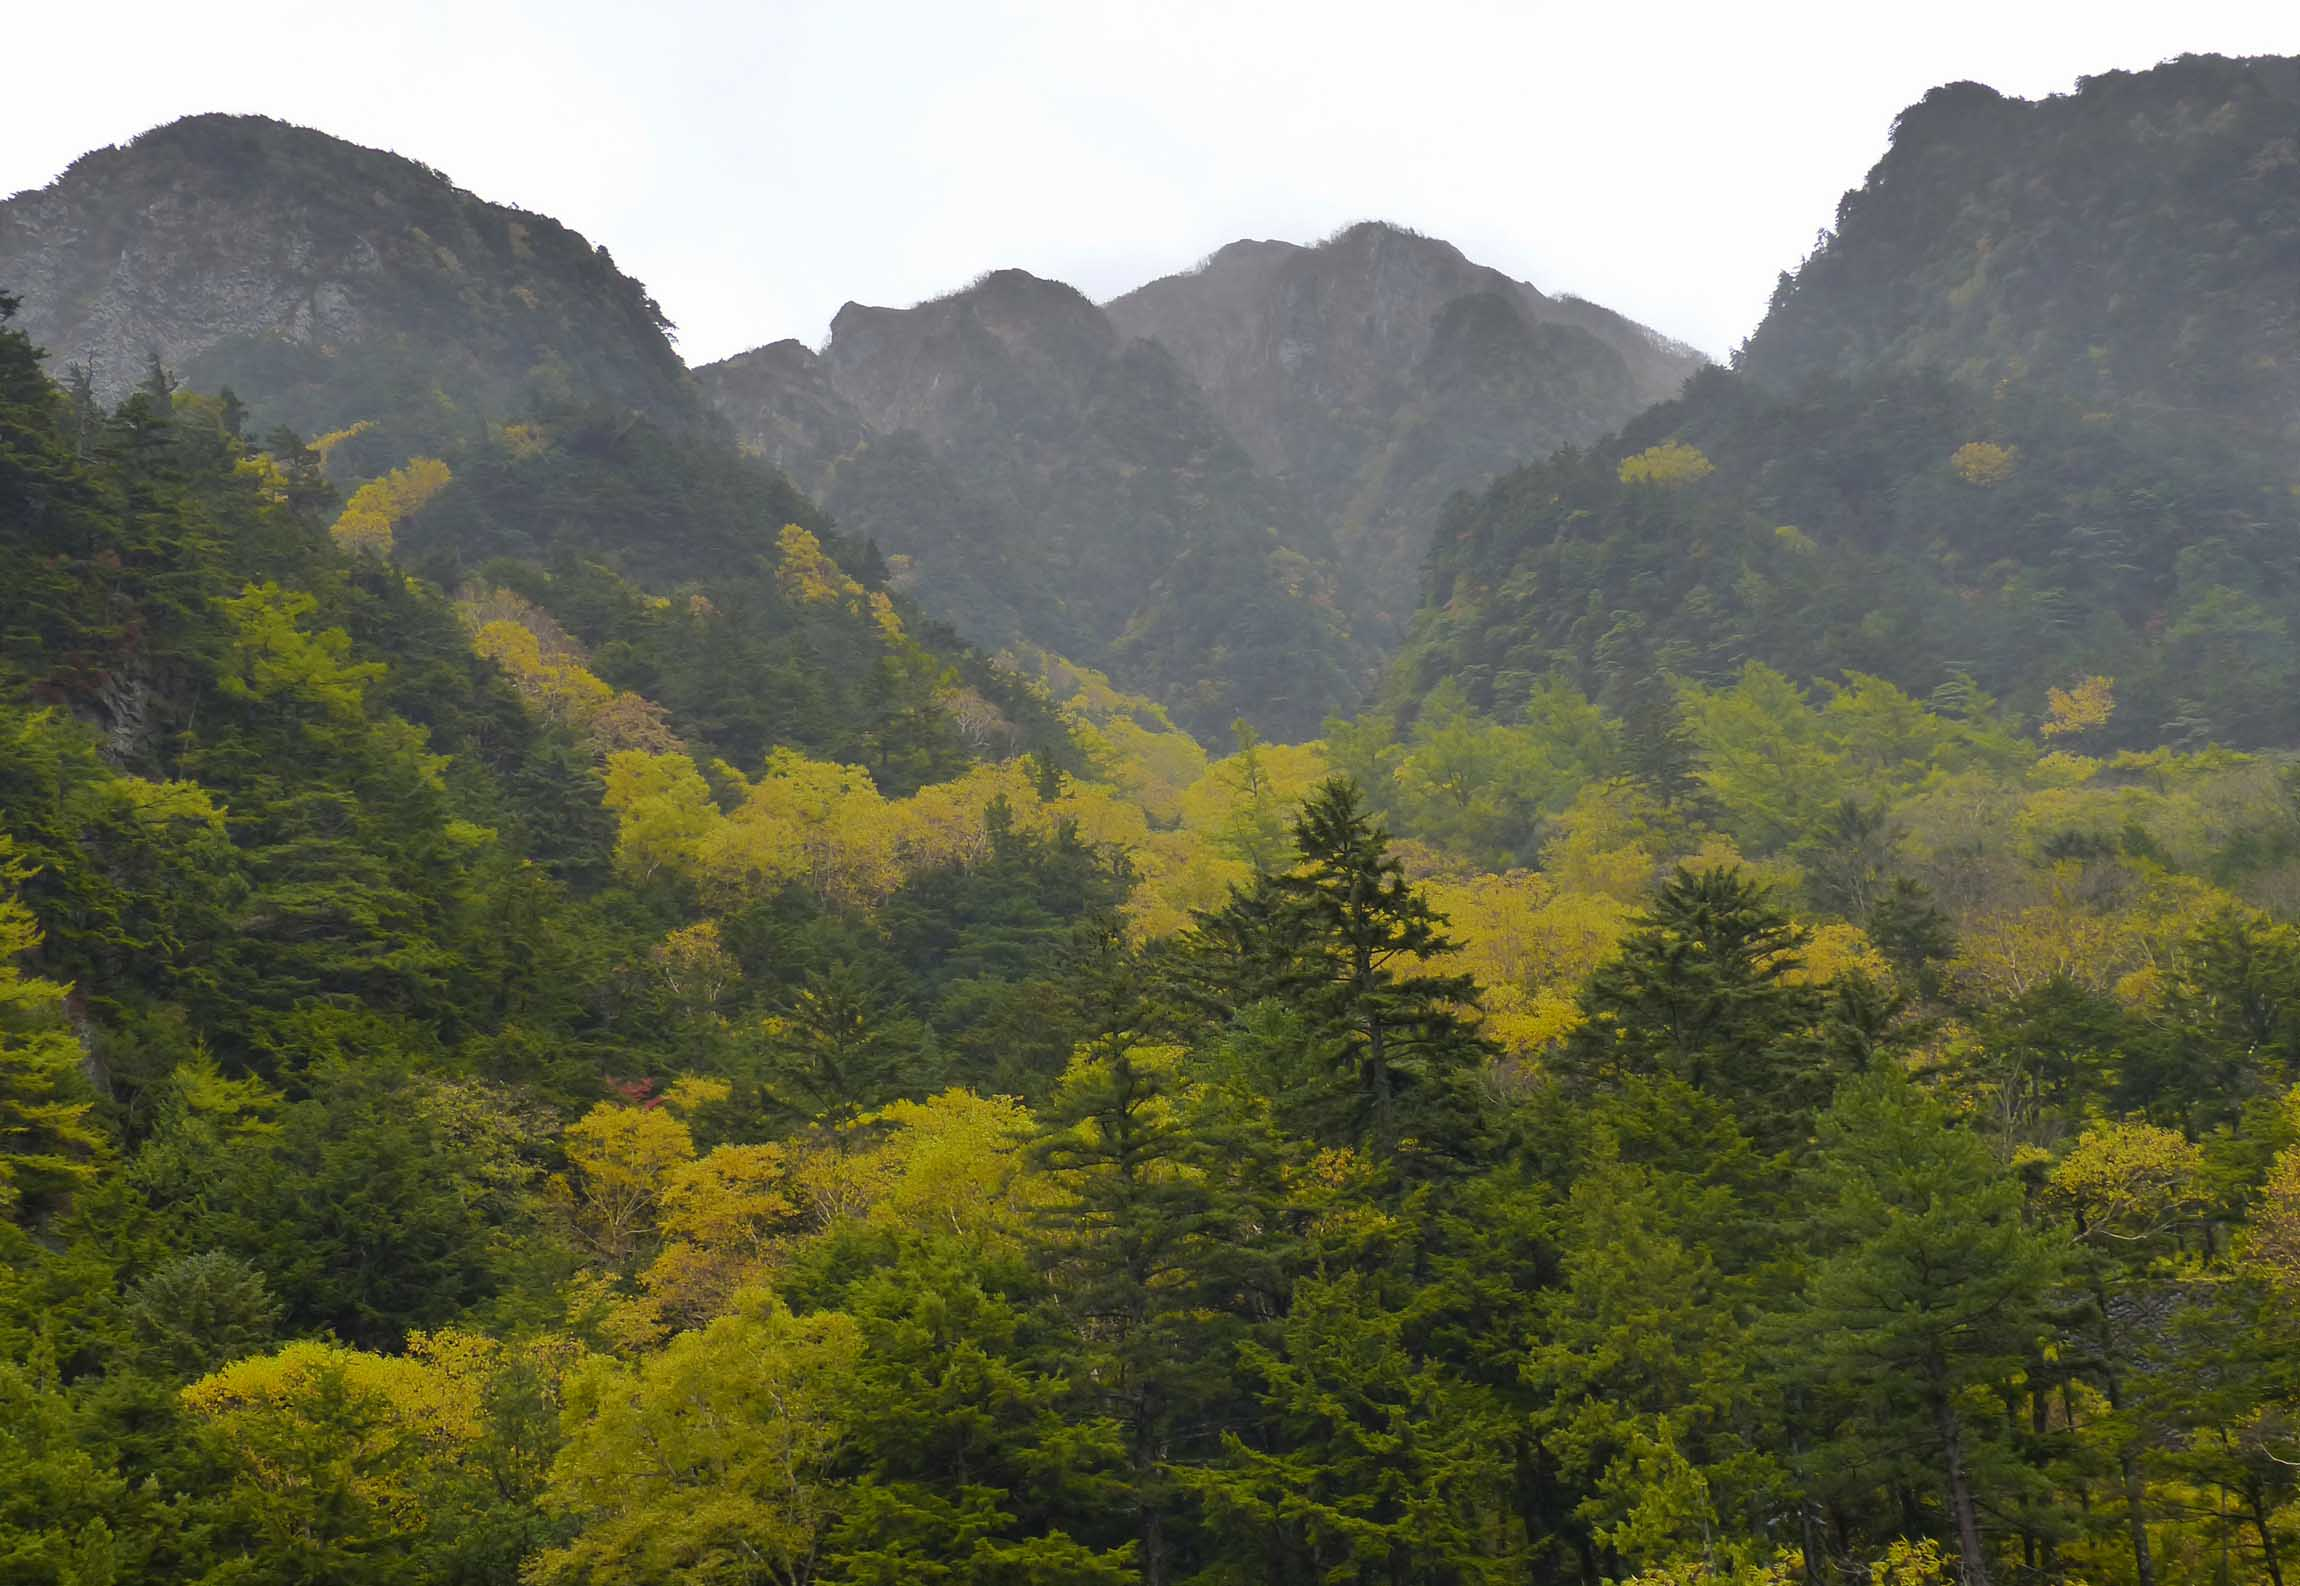 Wooded hillsides with leaves turning yellow